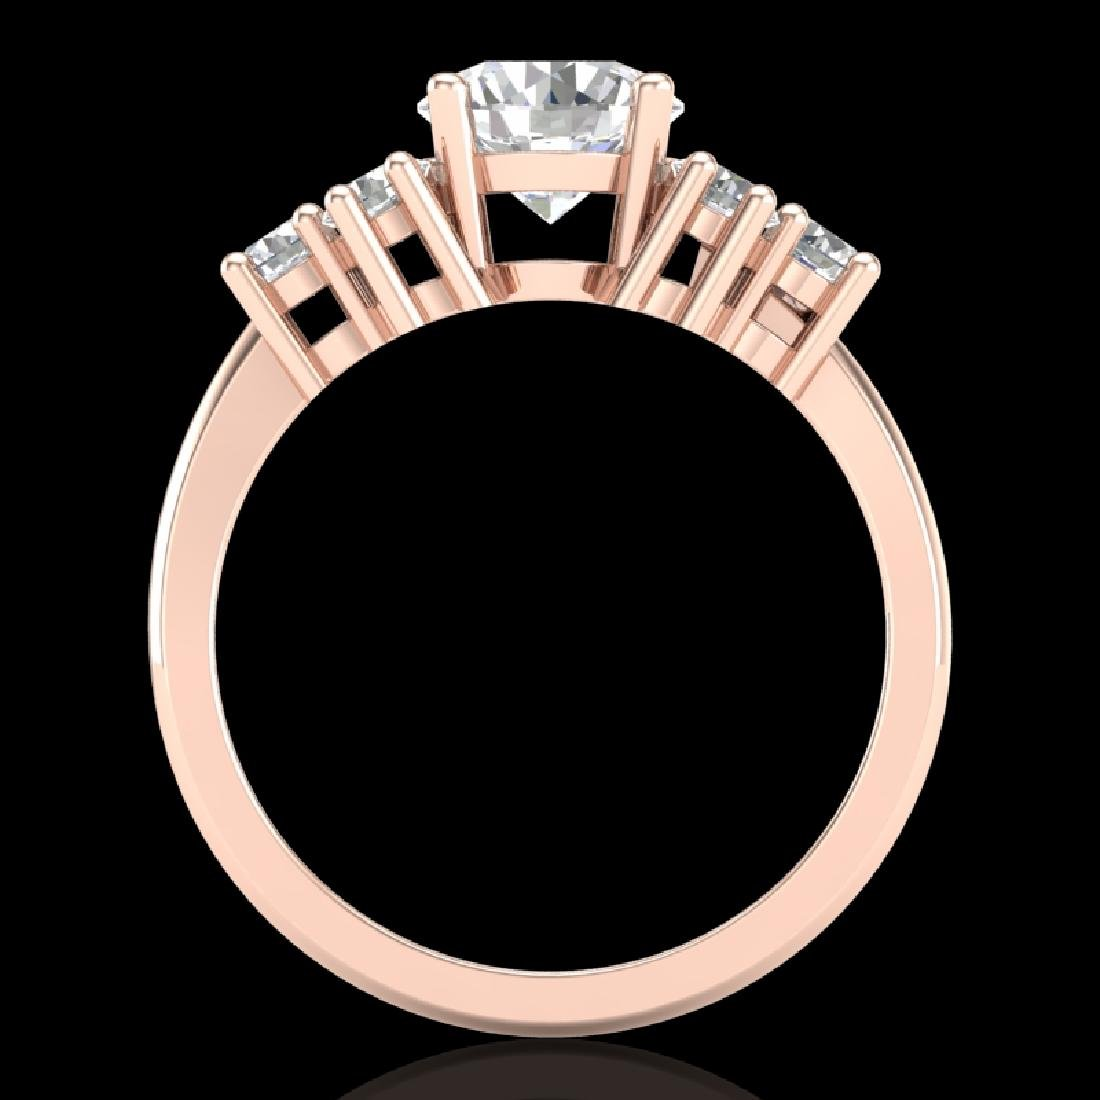 2.1 CTW VS/SI Diamond Solitaire Ring 18K Rose Gold